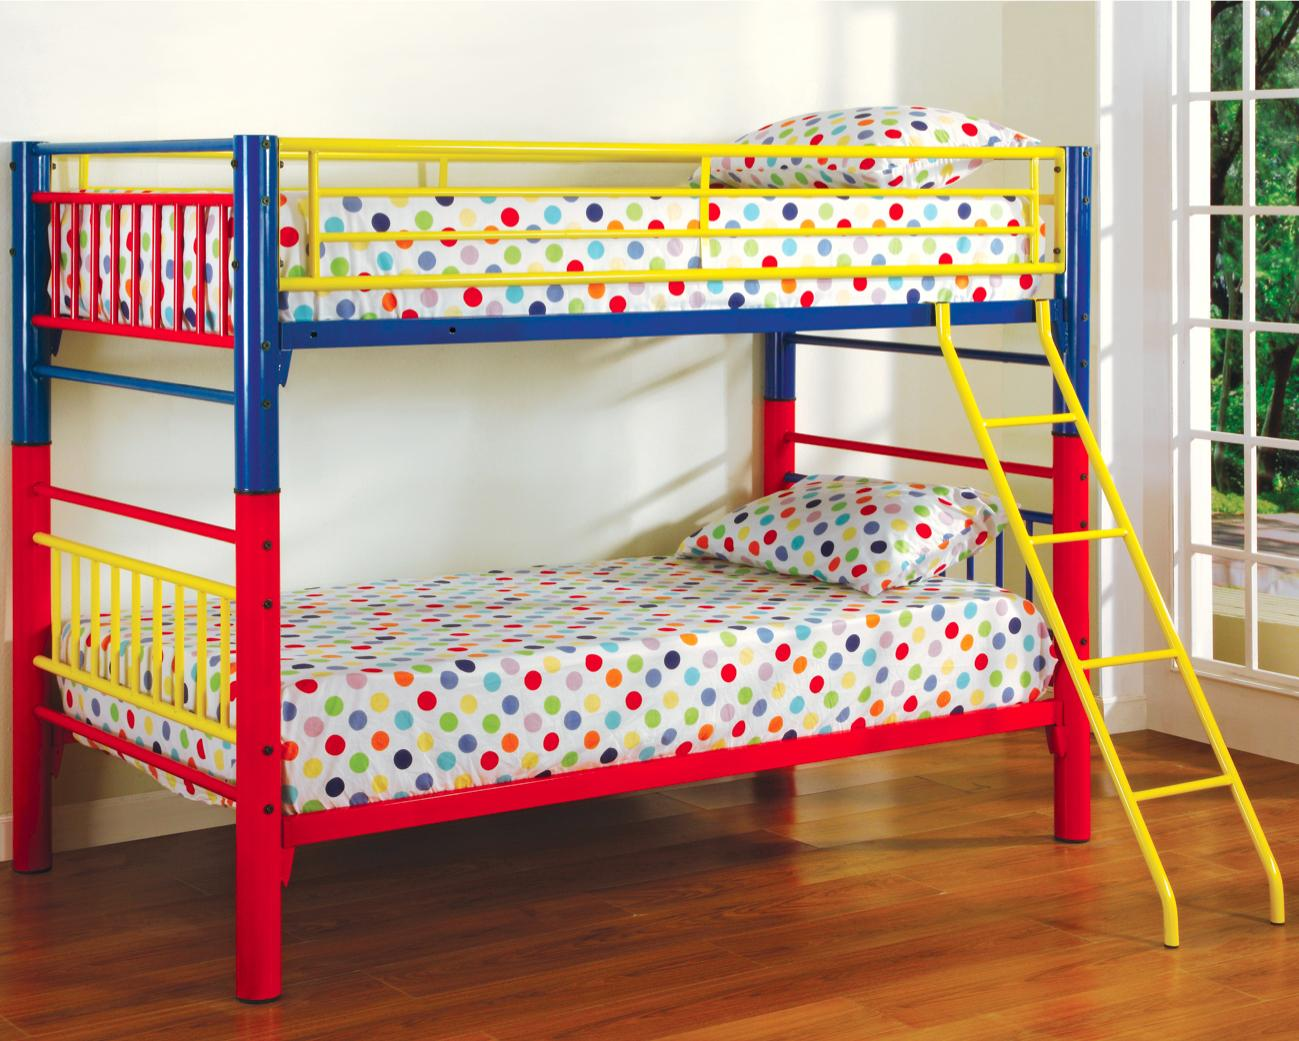 Kid's Oaks bunk bed